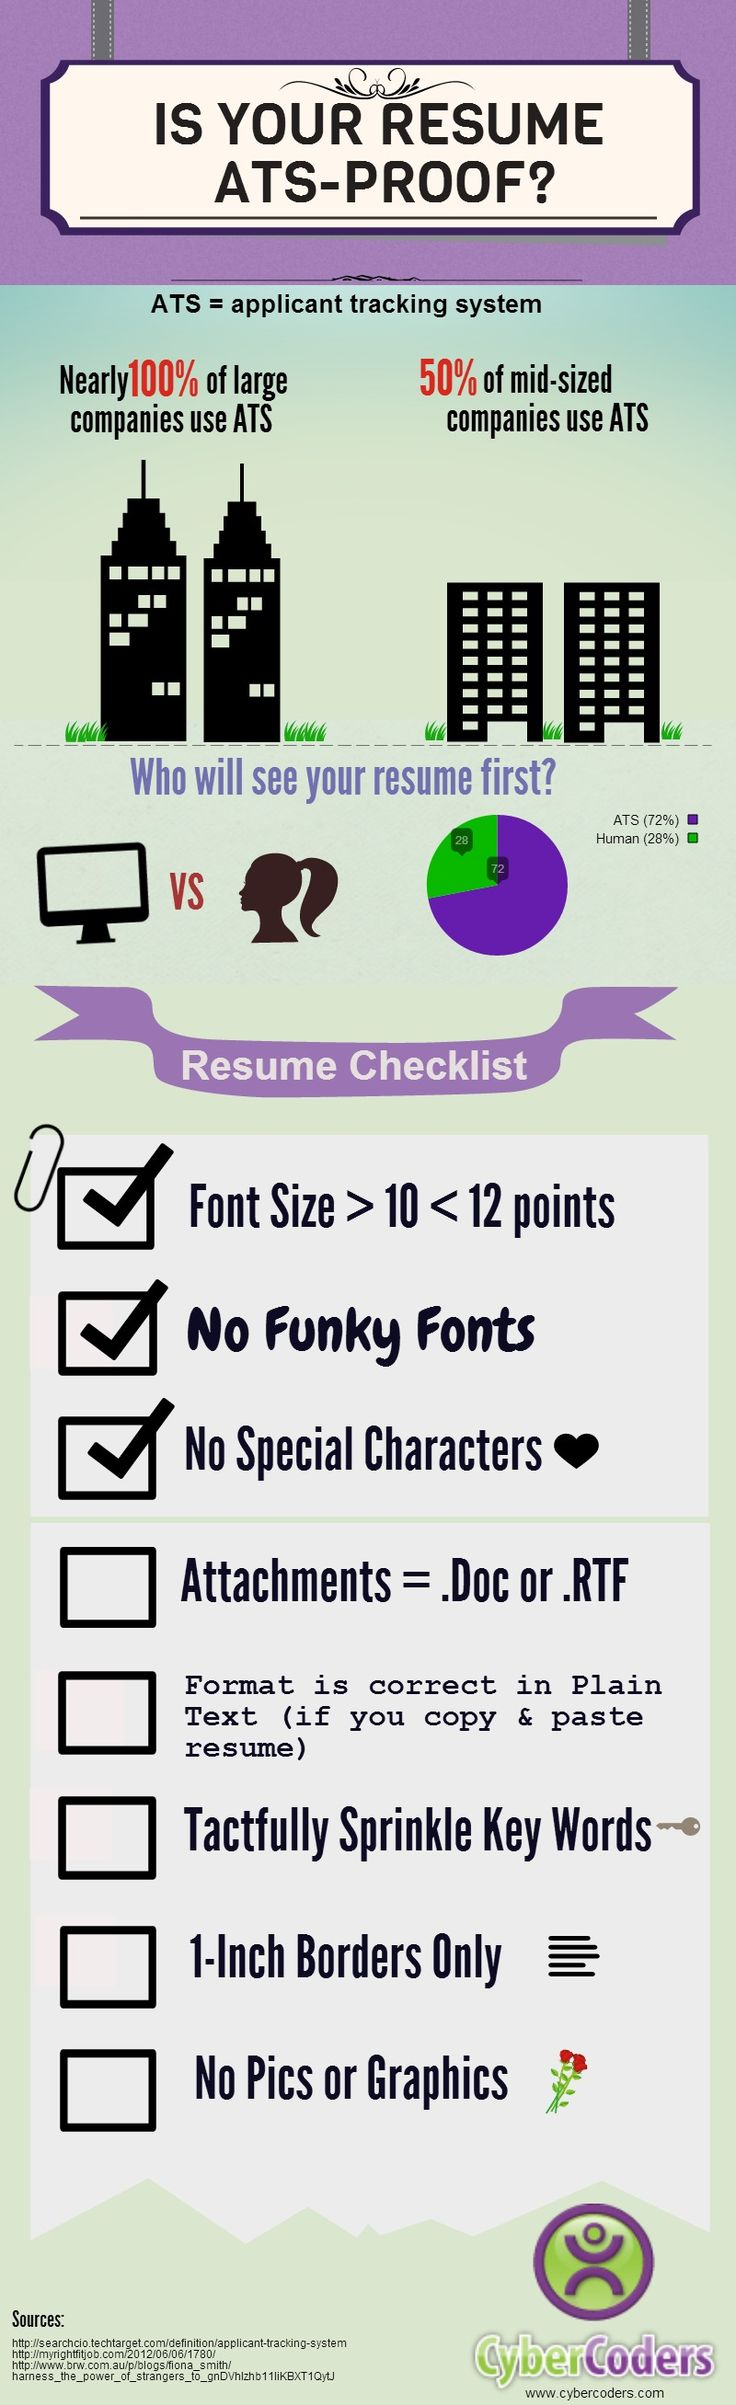 (How To Ensure Your Resume Gets Read By A Human [INFOGRAPHIC])